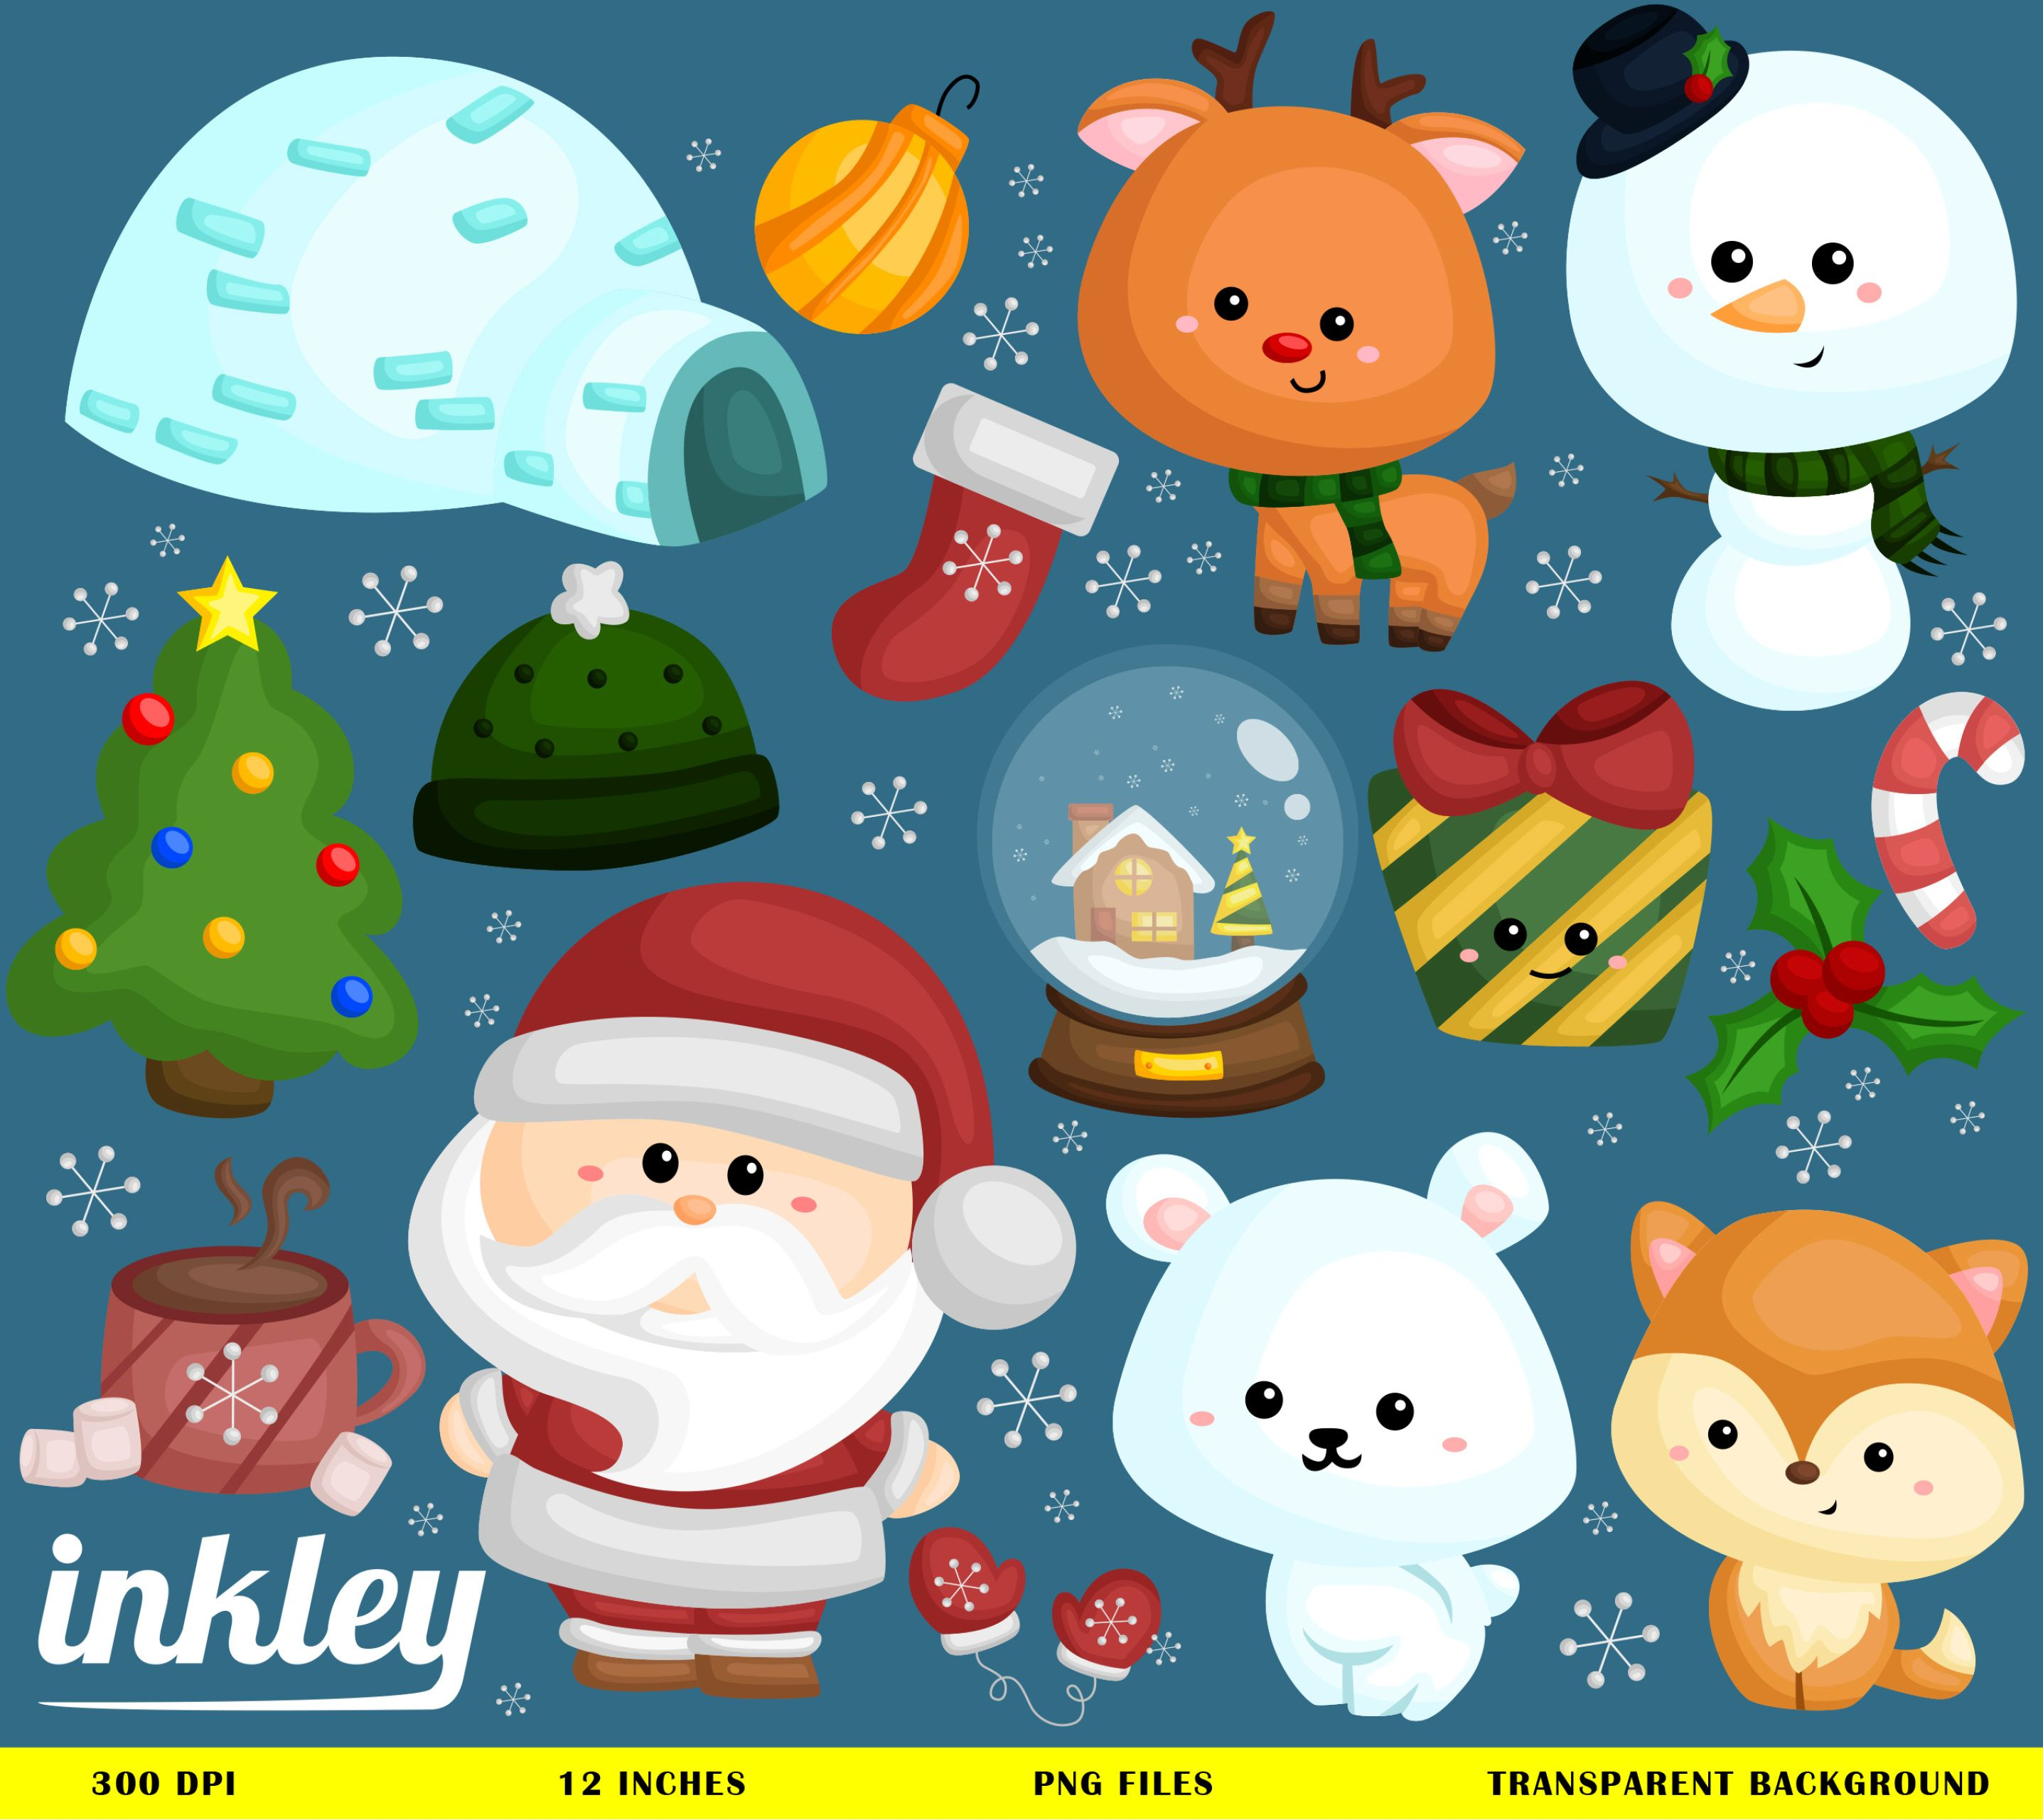 Ready To Use Snowy Christmas And Clipart For Personal Commercial